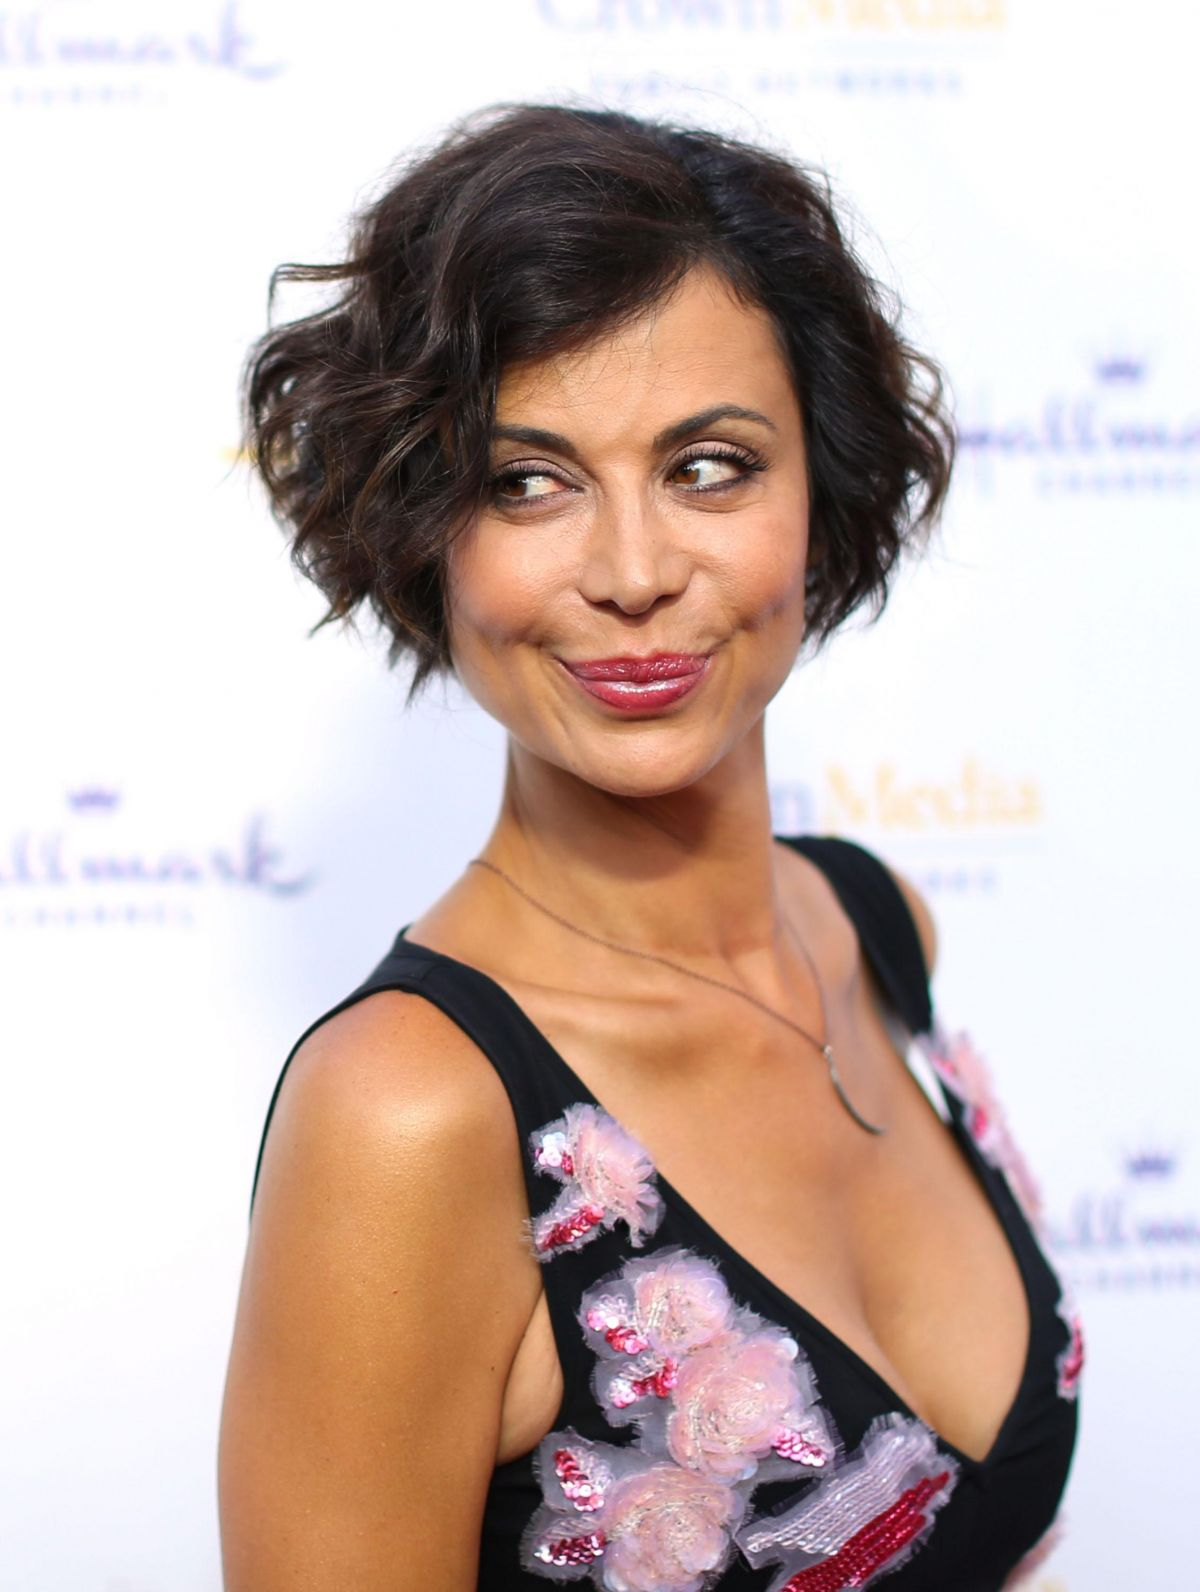 catherine bell photo